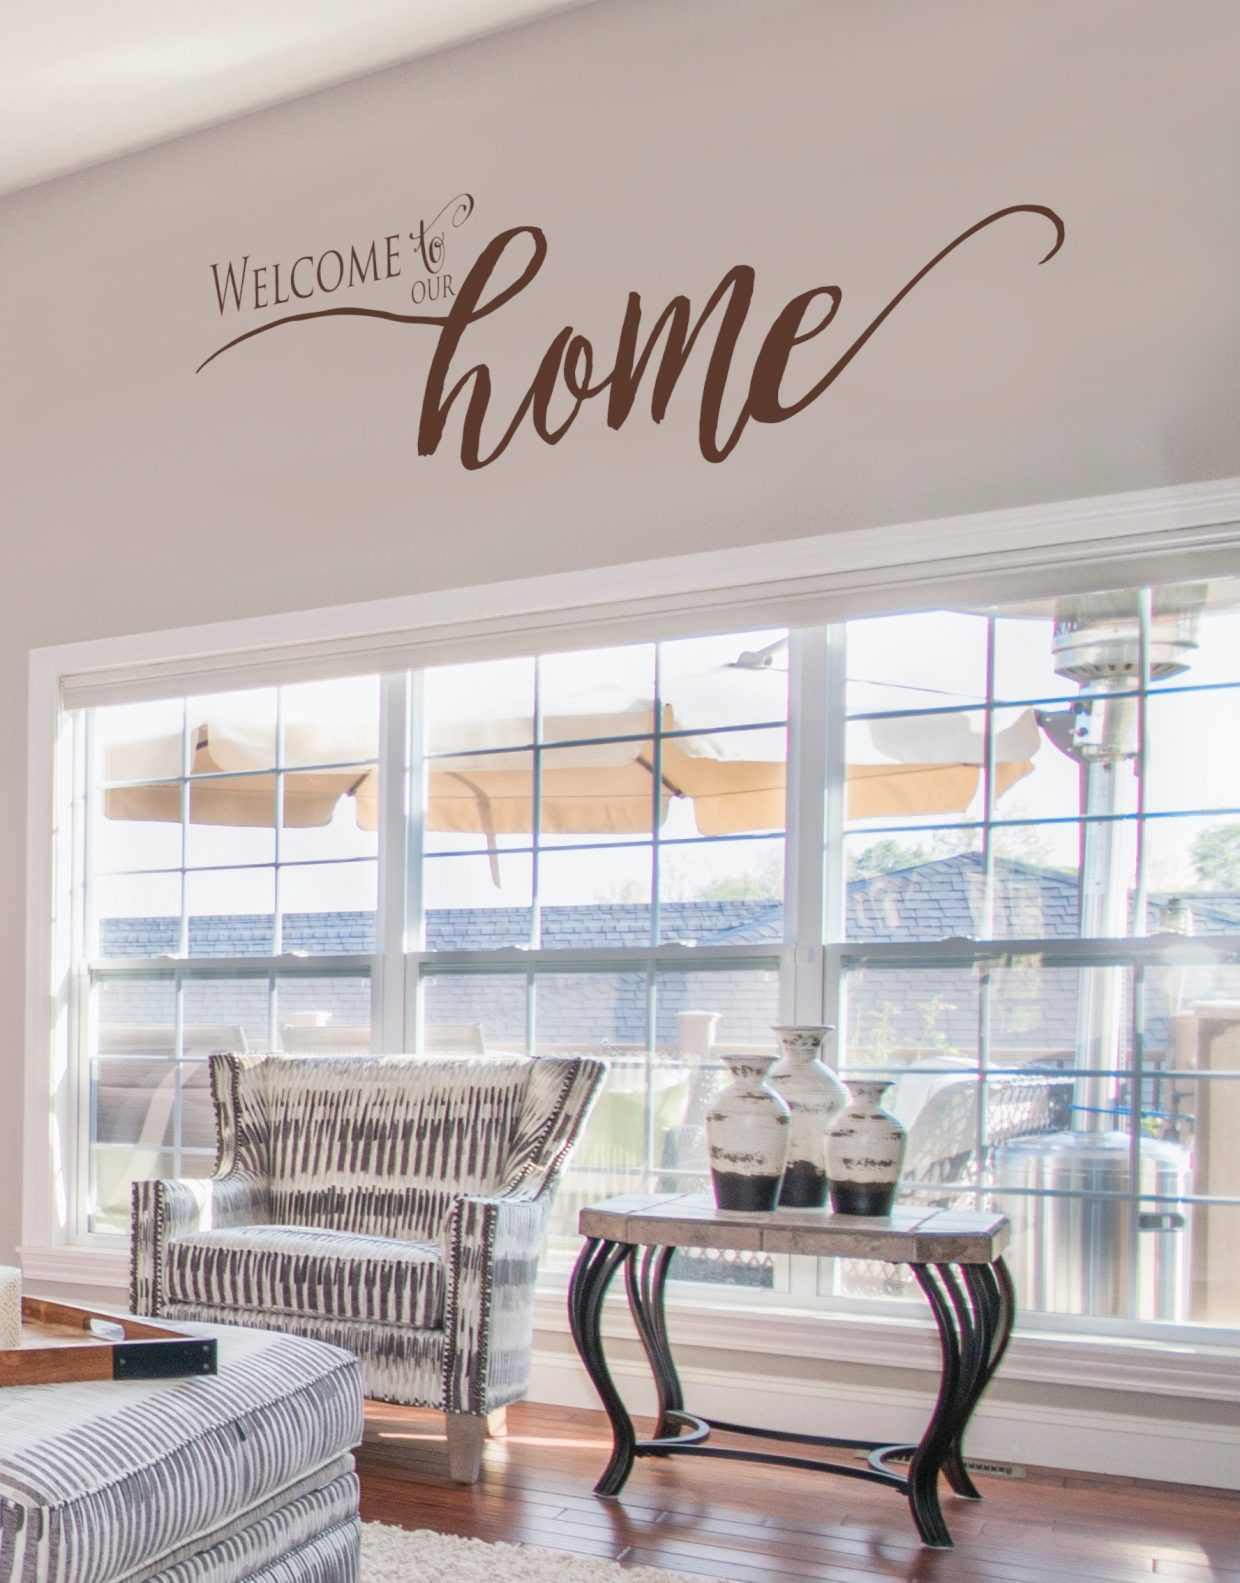 Welcome to Our Home - famiy wall decal